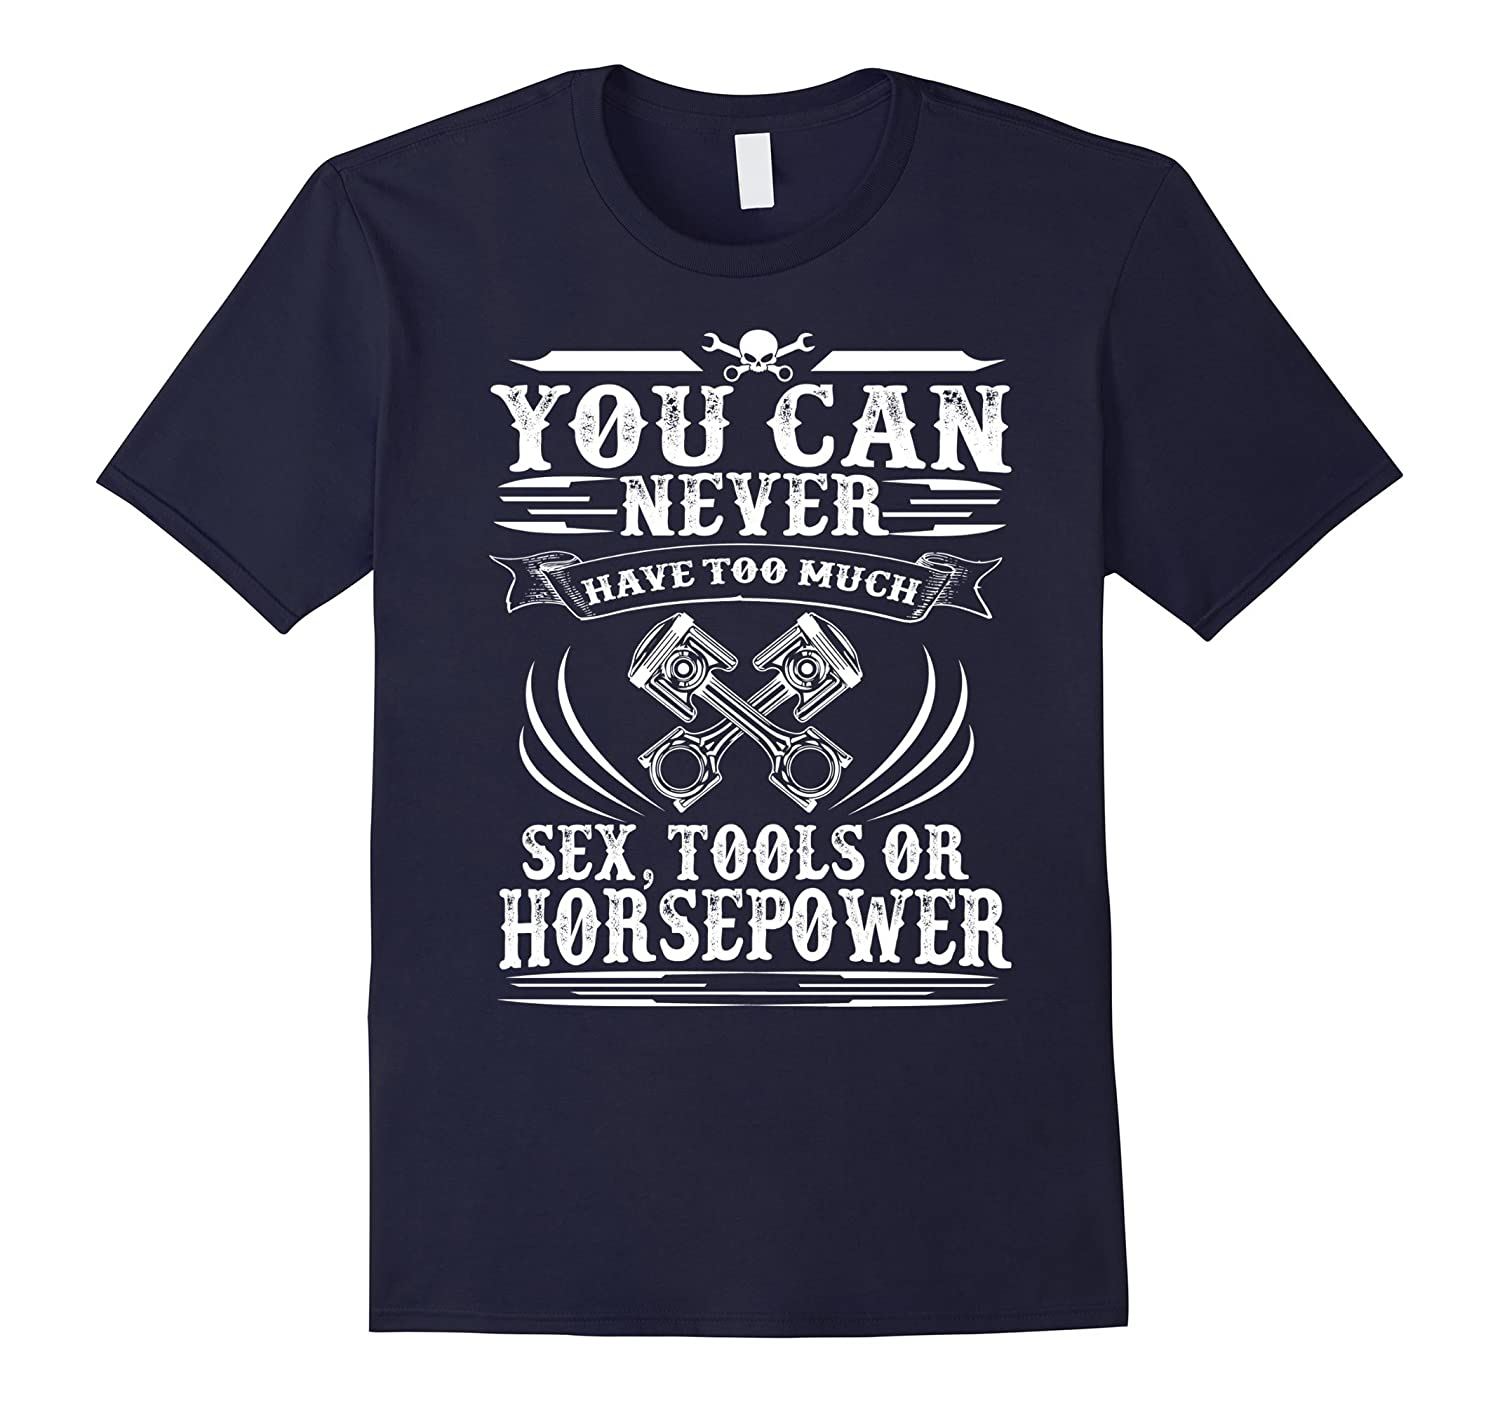 YOU CAN NEVER HAVE TOO MUCH SEX TOOLS OR HORSEPOWER T-SHIRT